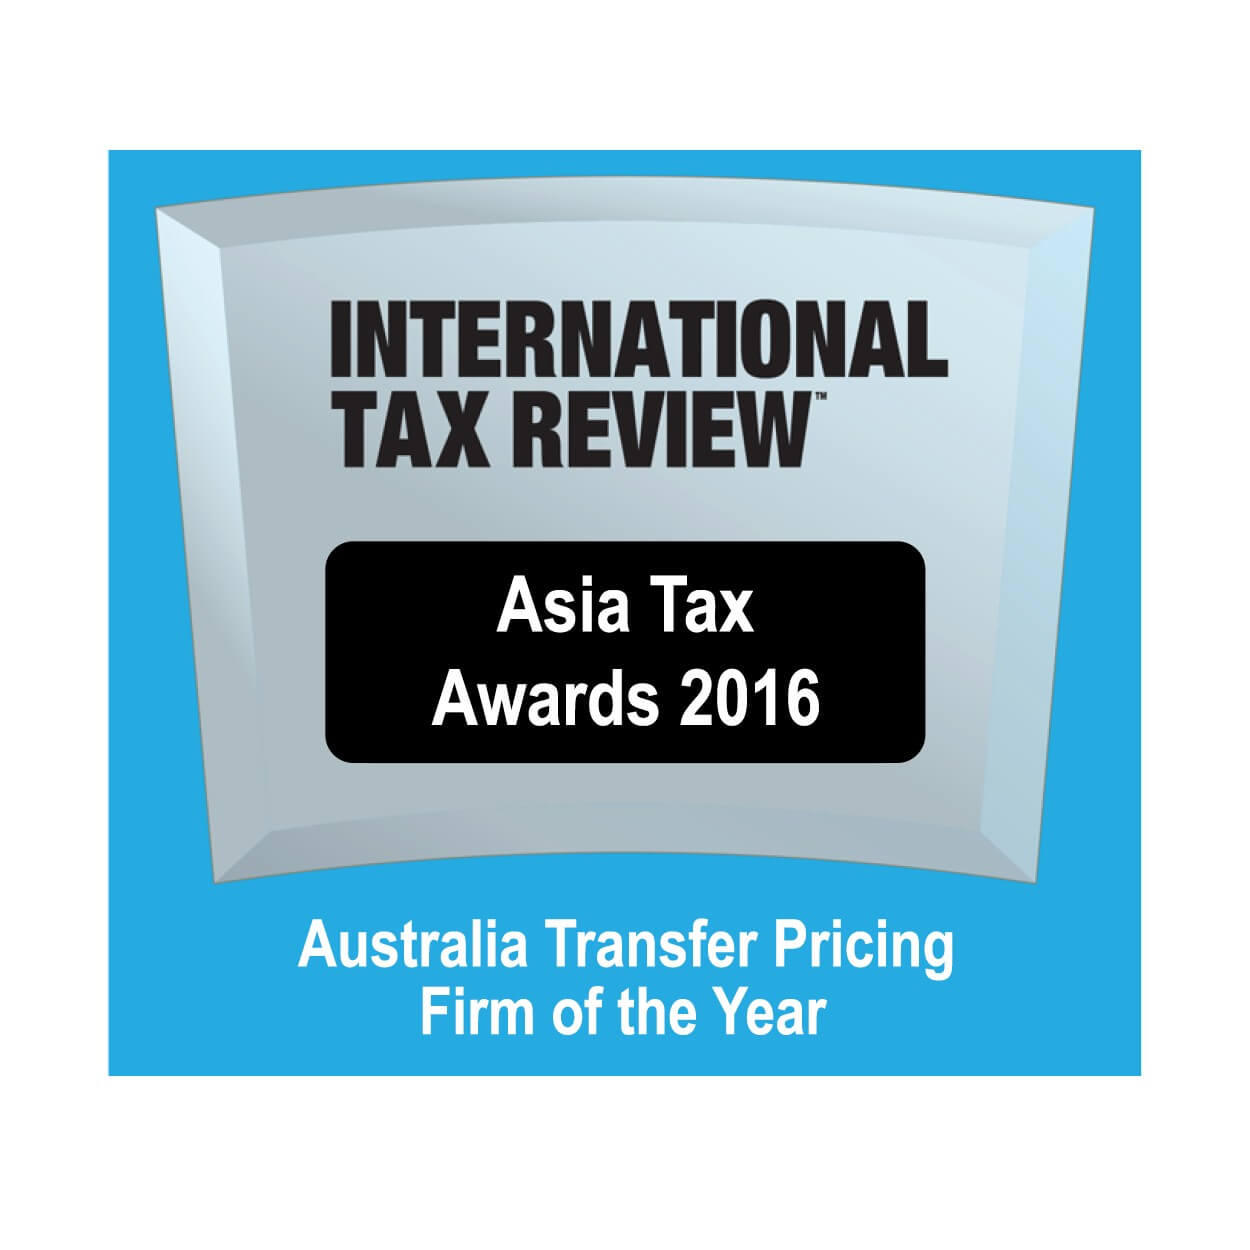 Asia Tax Awards 2016